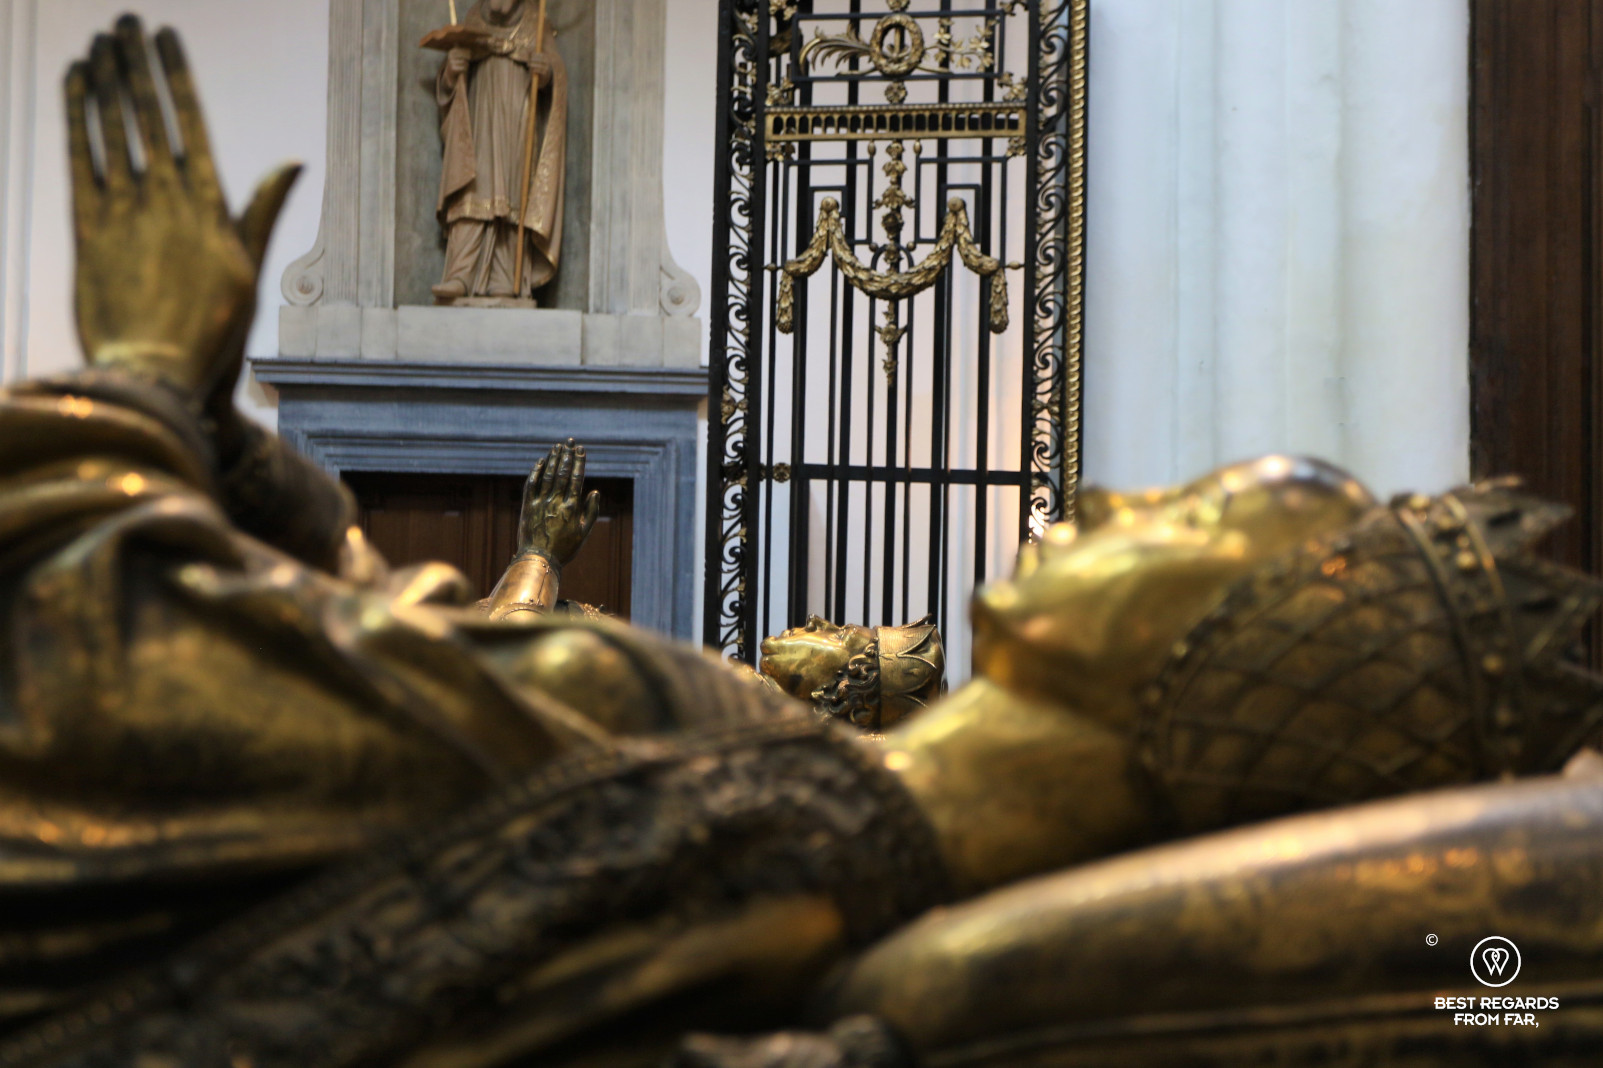 The resting place of Marguerite de Bourgogne, The Church of Our Lady, Bruges, Belgium